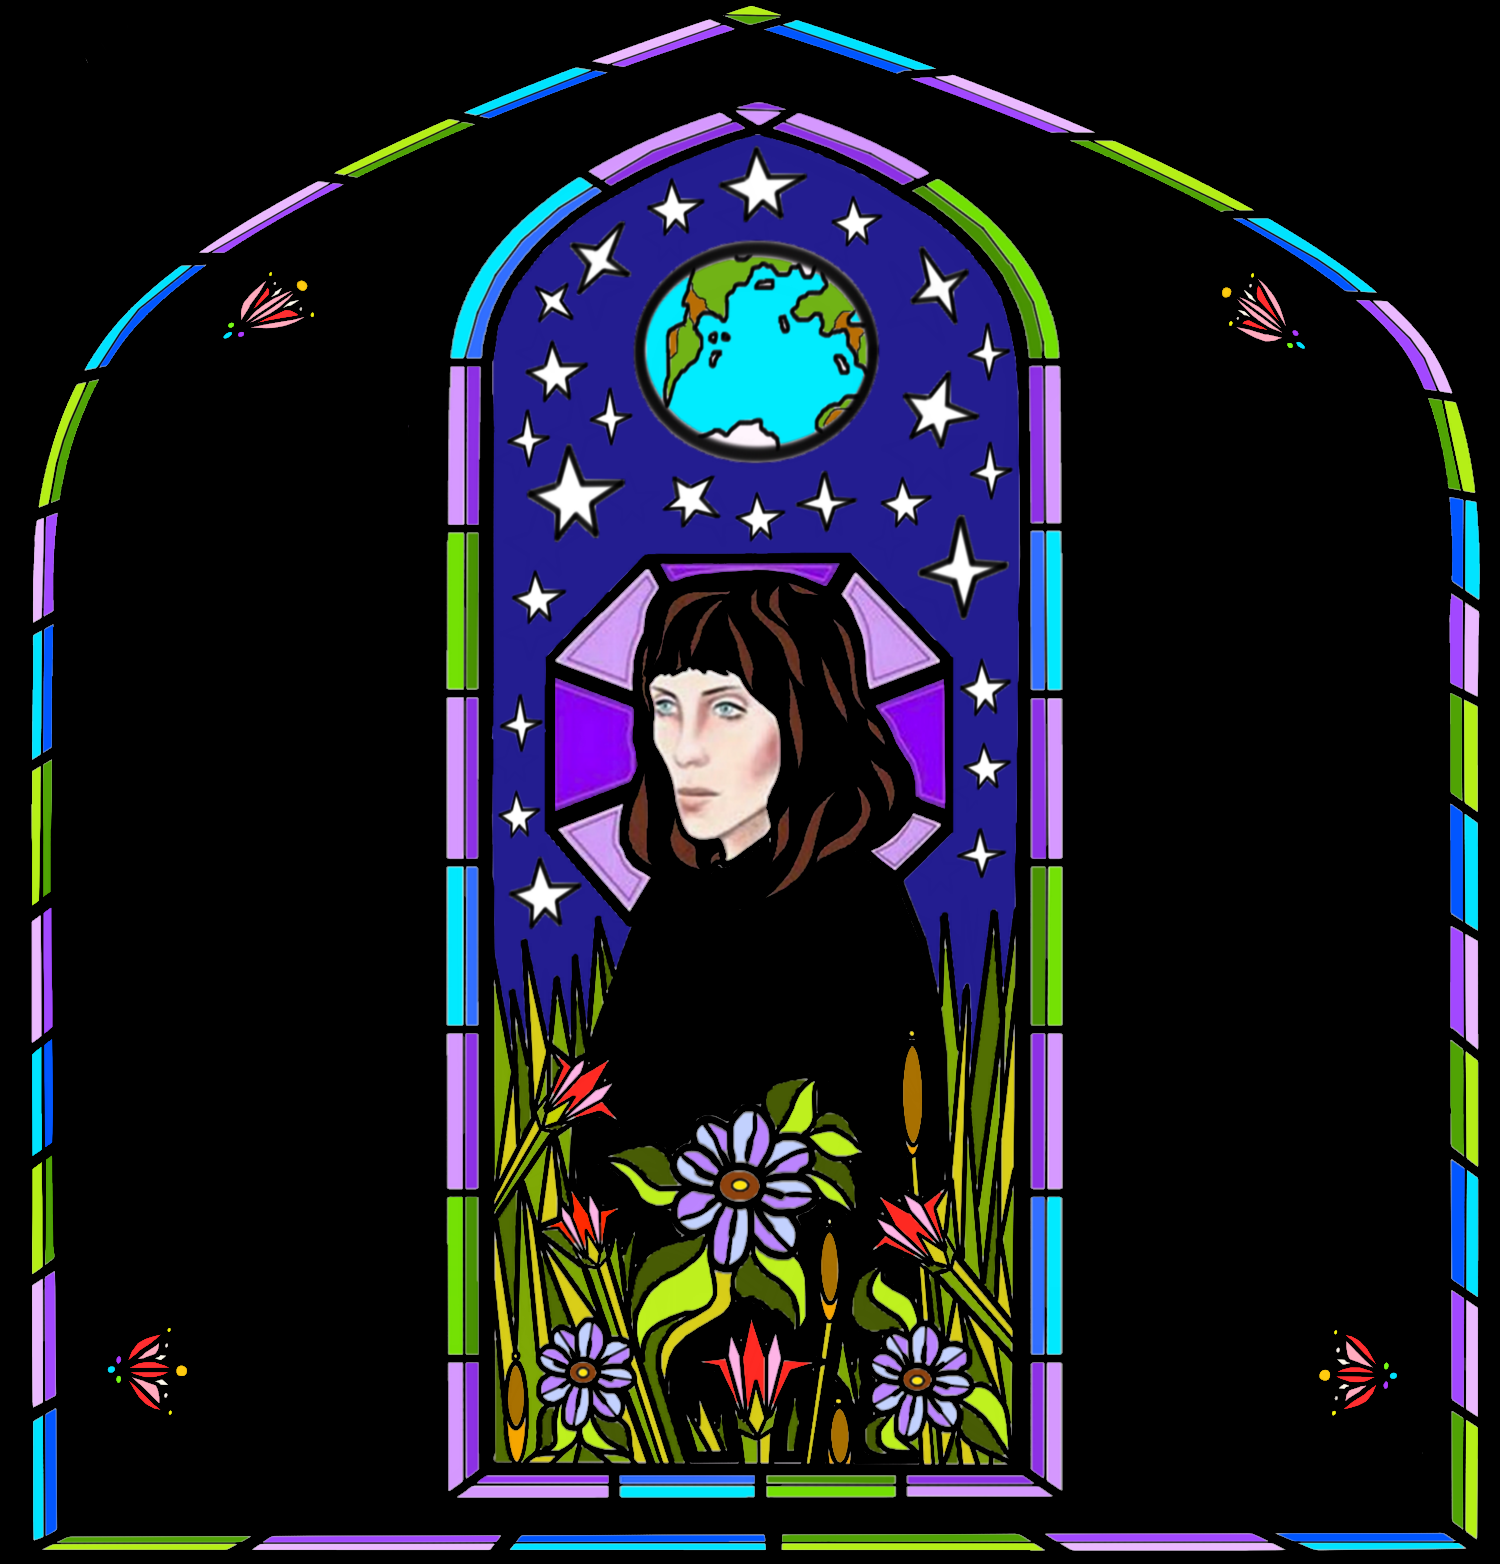 free-printable-stained-glass-window-coloring-pages-14+copy+8.png